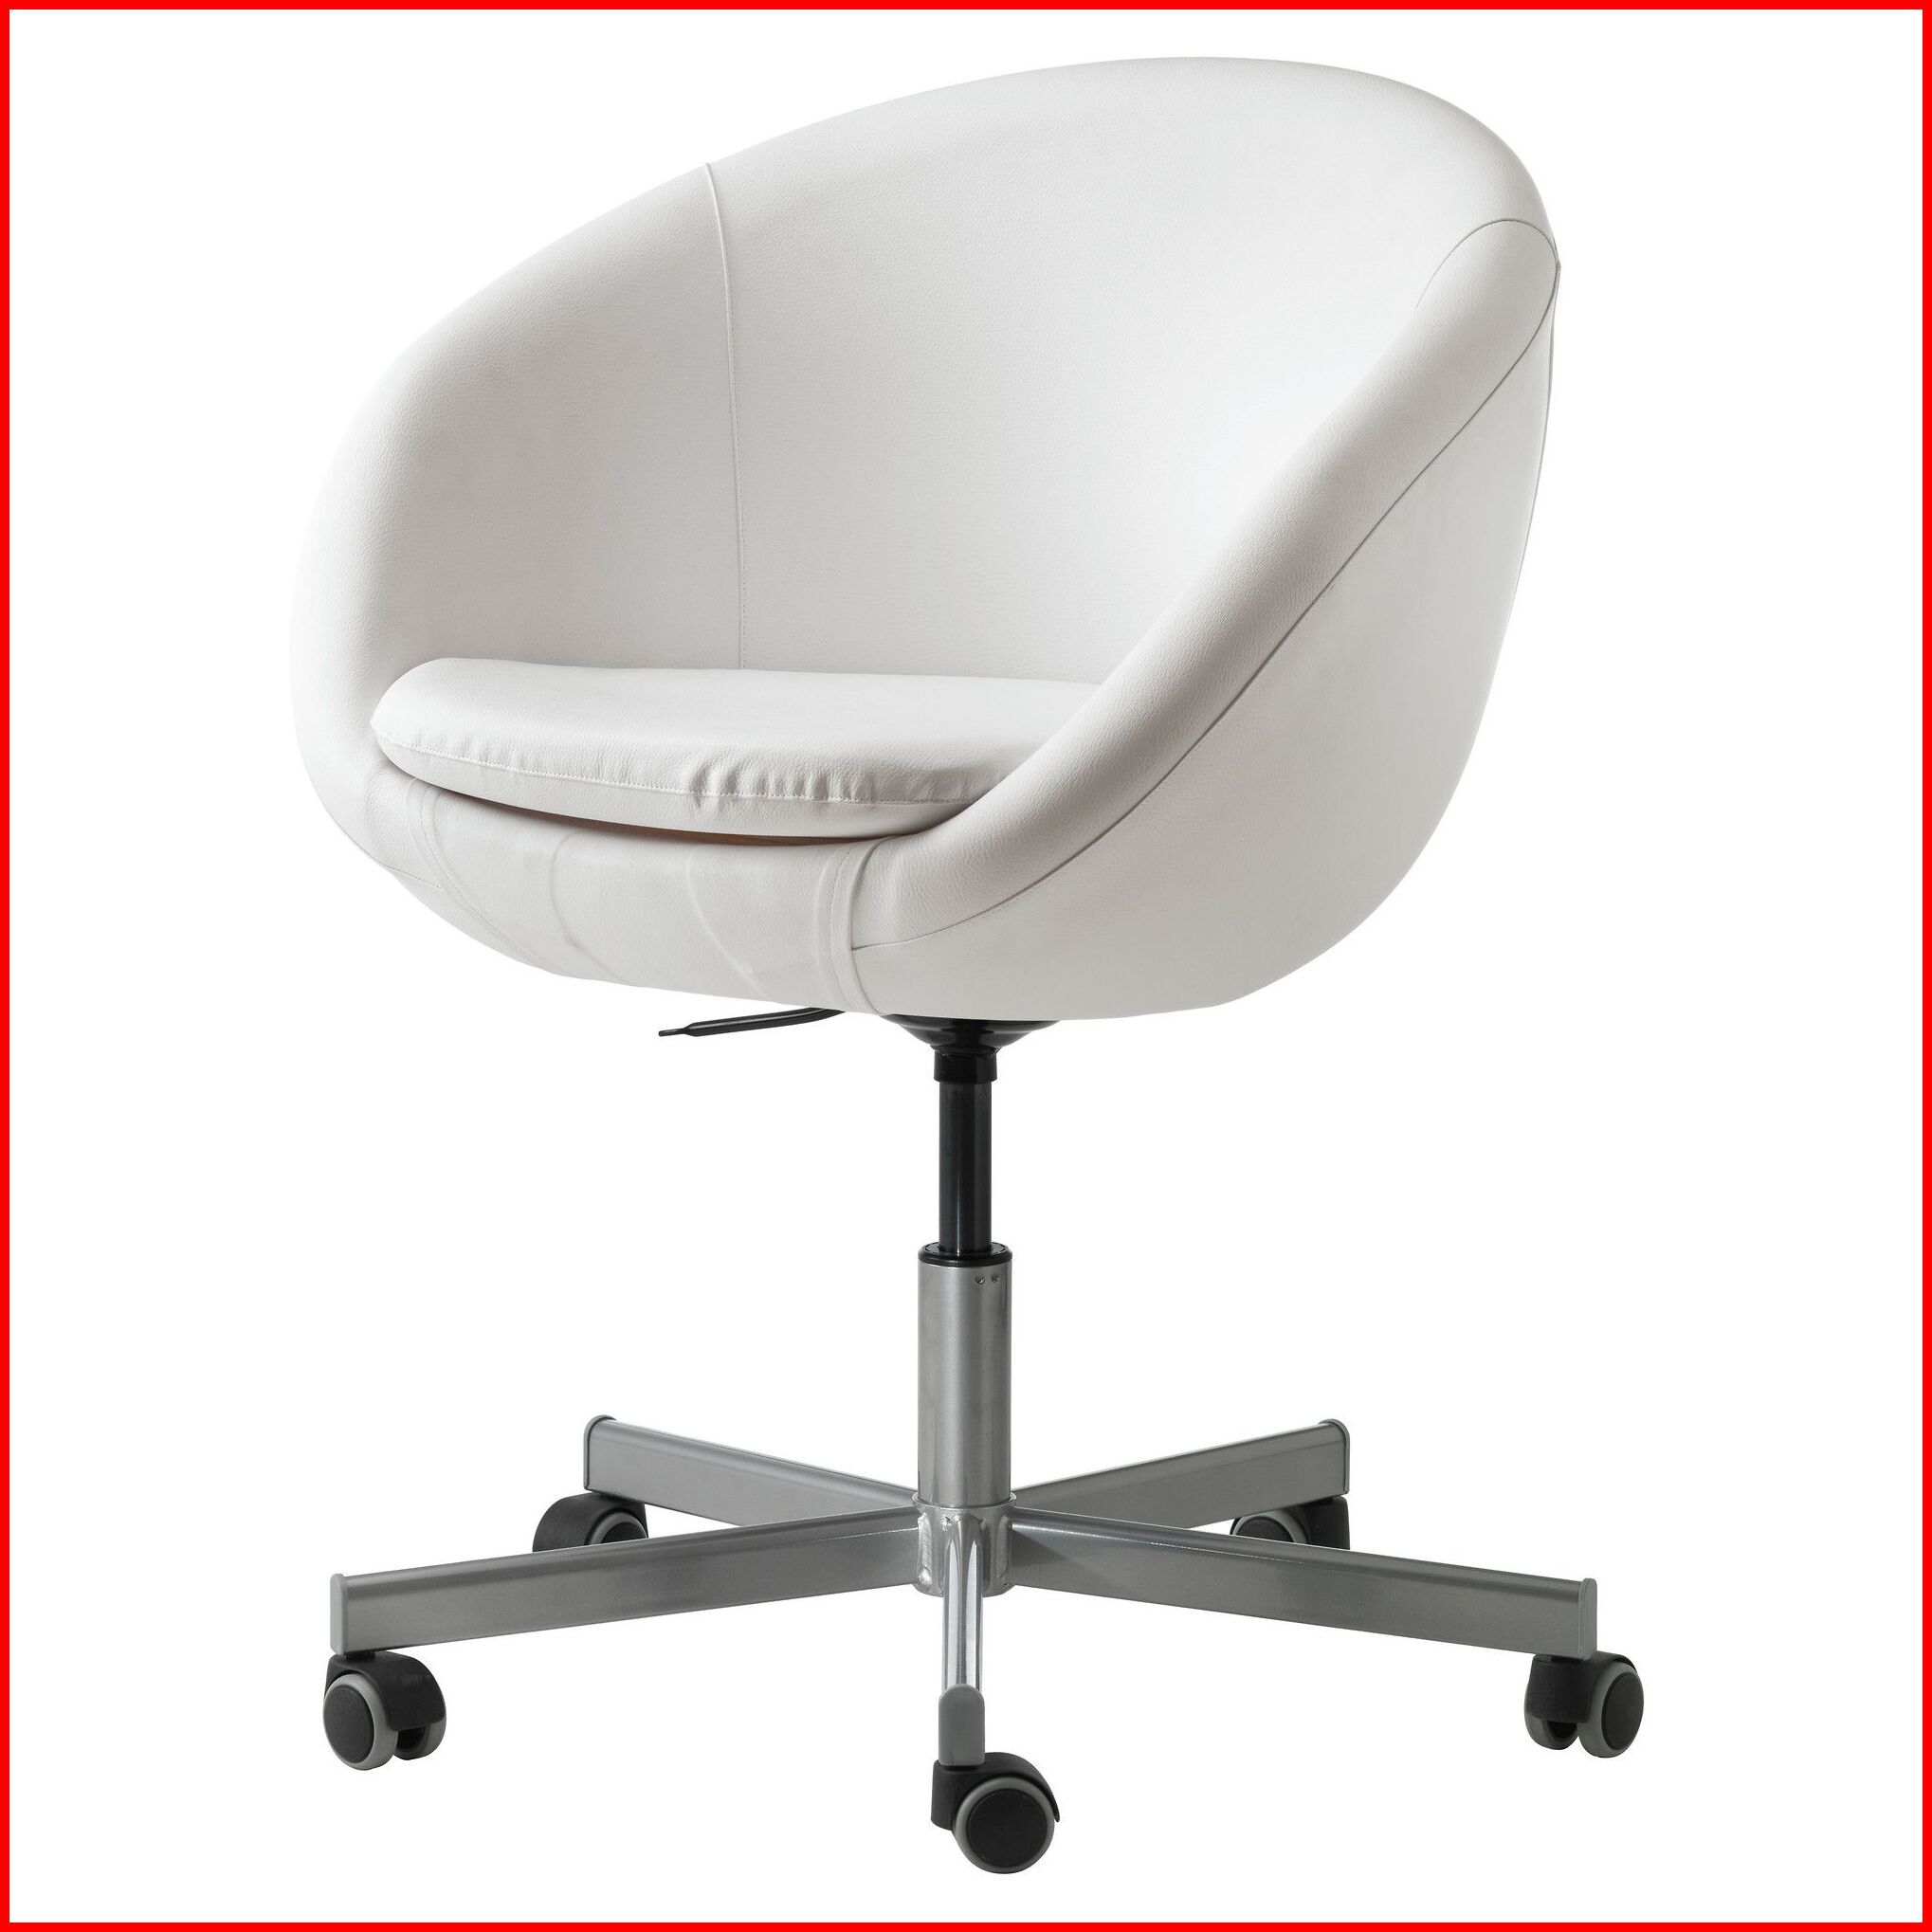 104 Reference Of Stylish Desk Chair No Wheels In 2020 Stylish Office Chairs Desk Chair Comfy Ikea Office Chair